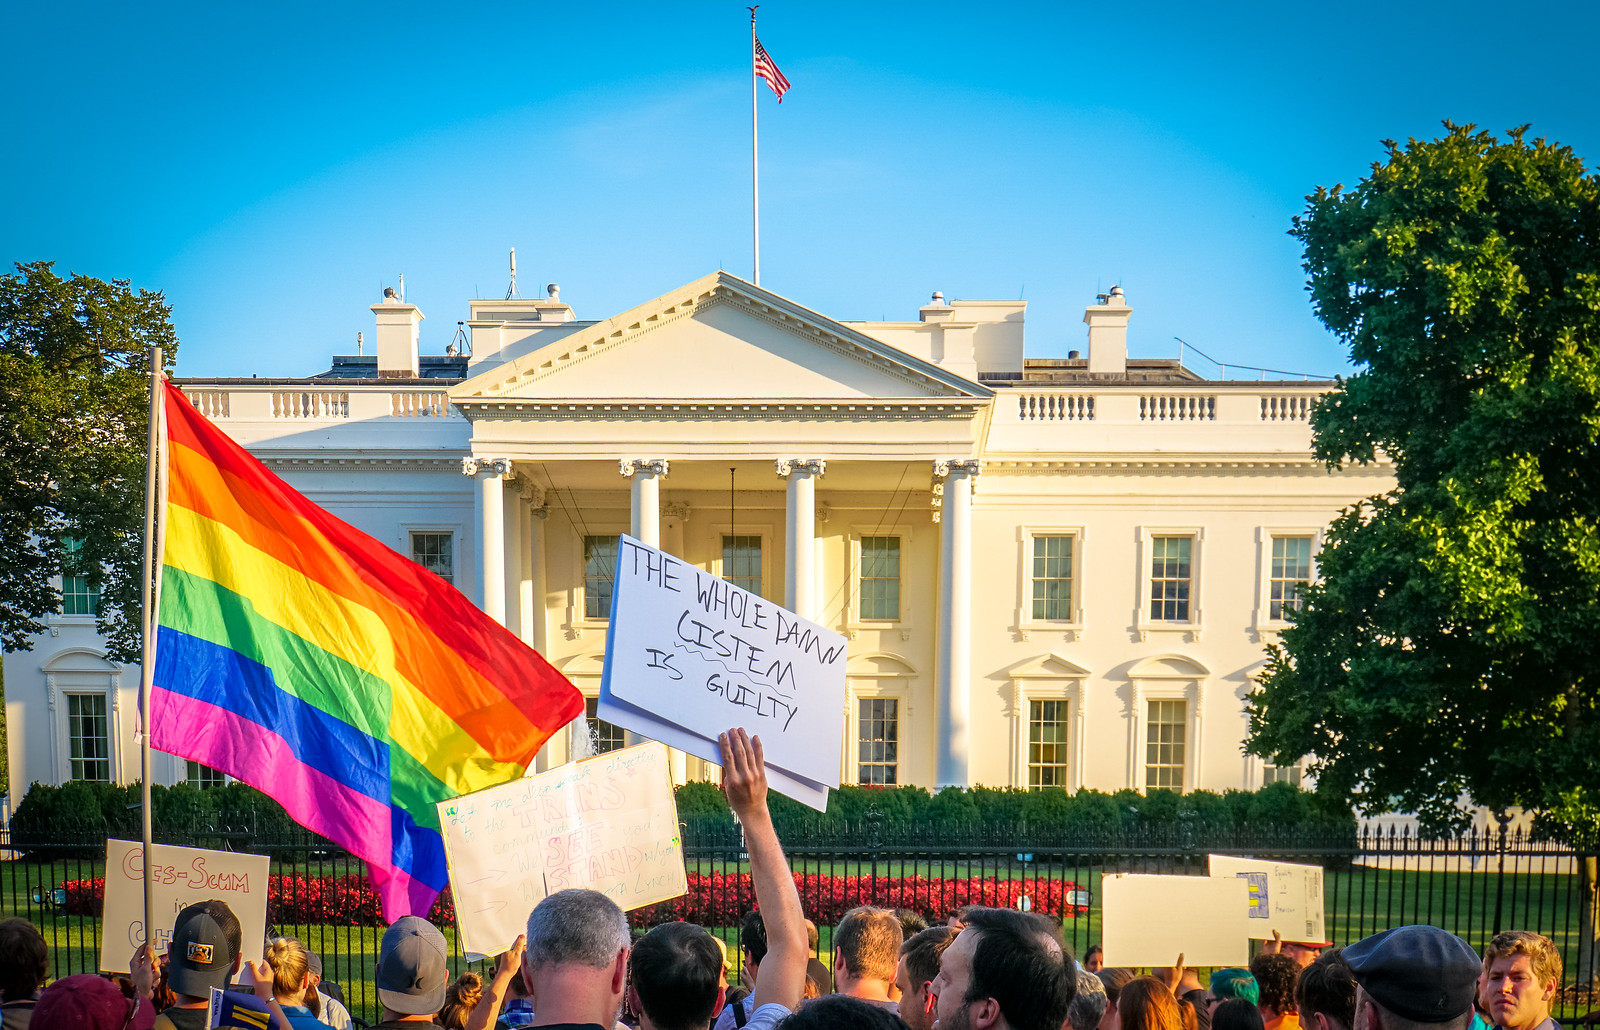 2017.07.26 Protest Trans Military Ban, White House, Washington DC USA 7635